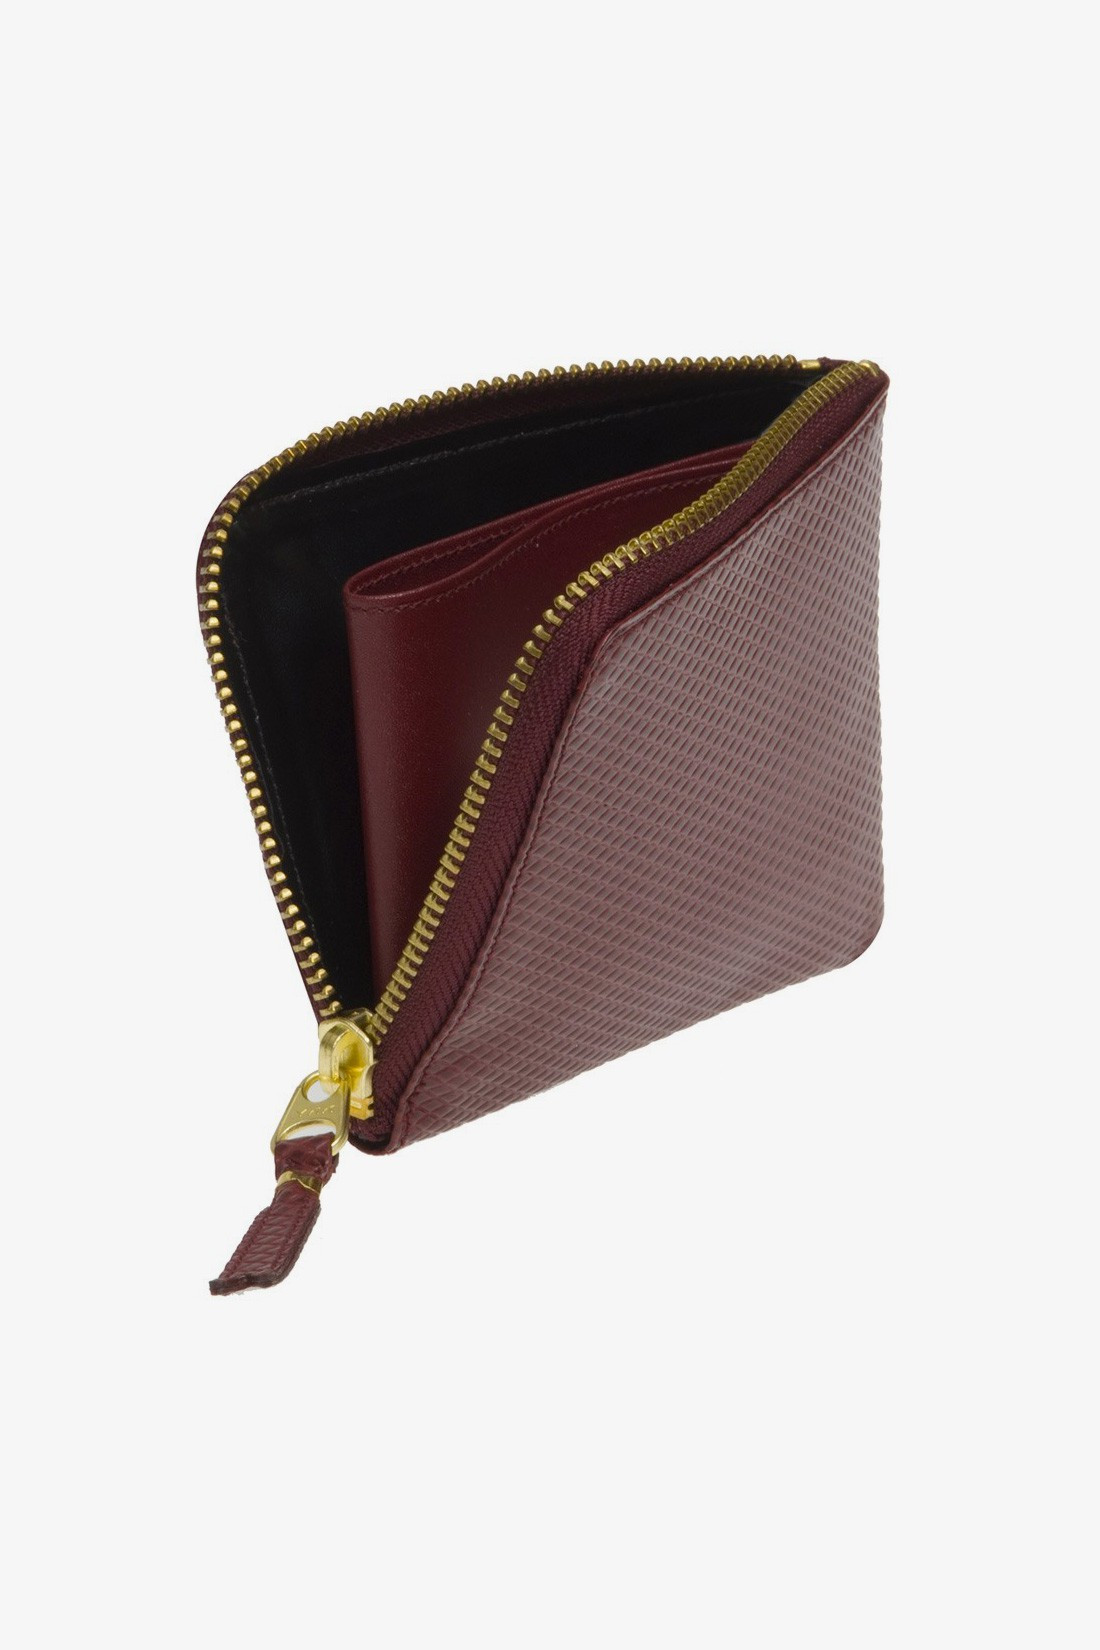 CDG WALLETS / Cdg luxury group 3100lg Burgundy